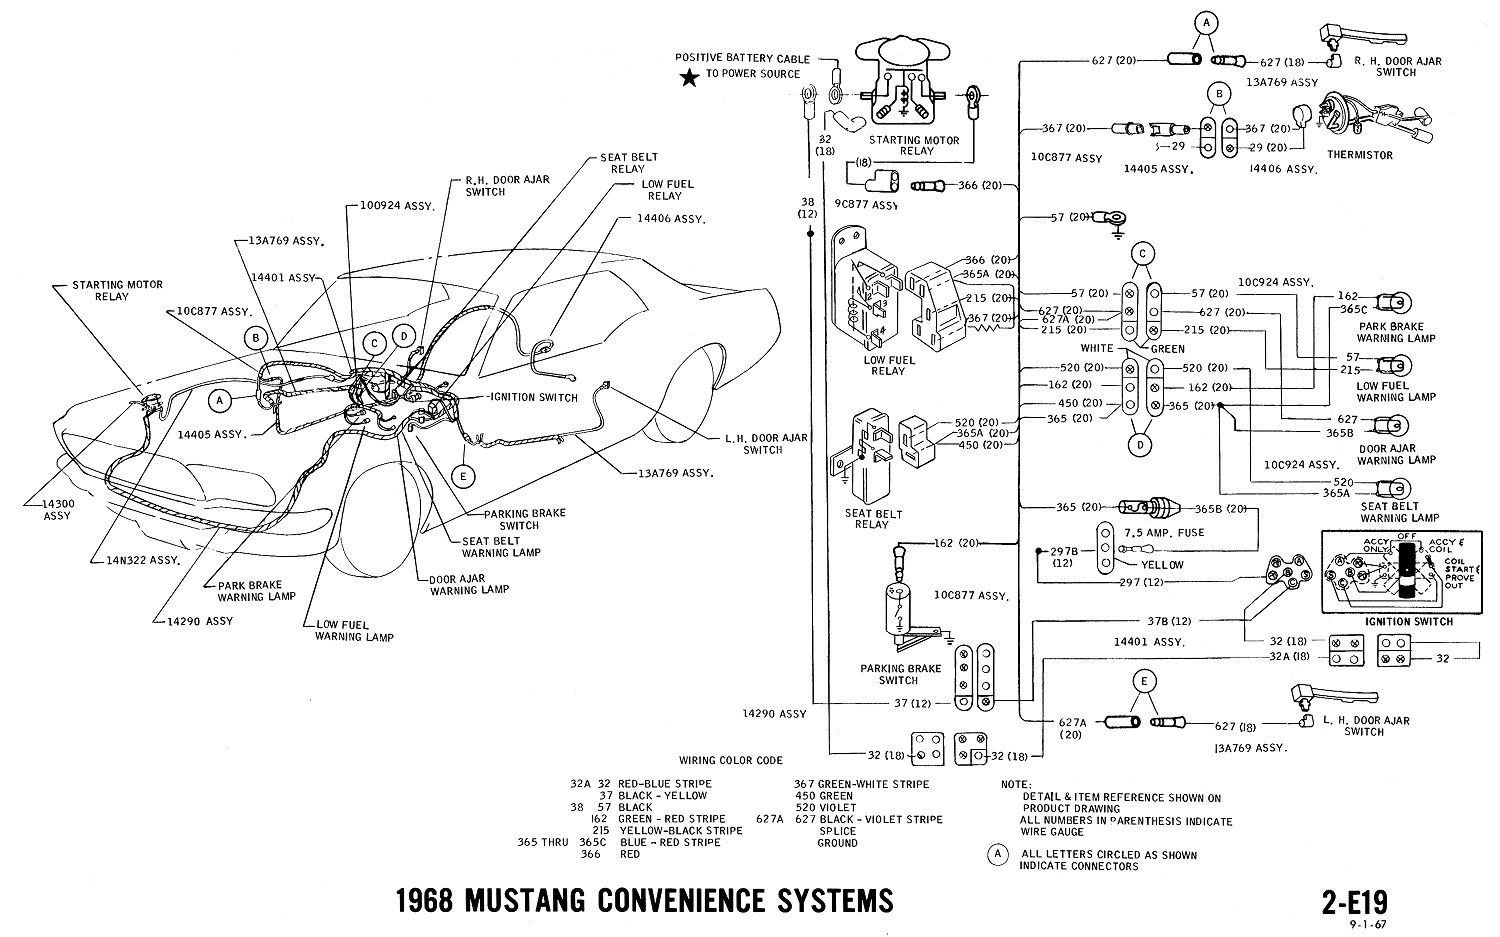 1968 Mustang Wiring Diagram Vacuum Schematics on 1966 ford mustang color wiring diagram